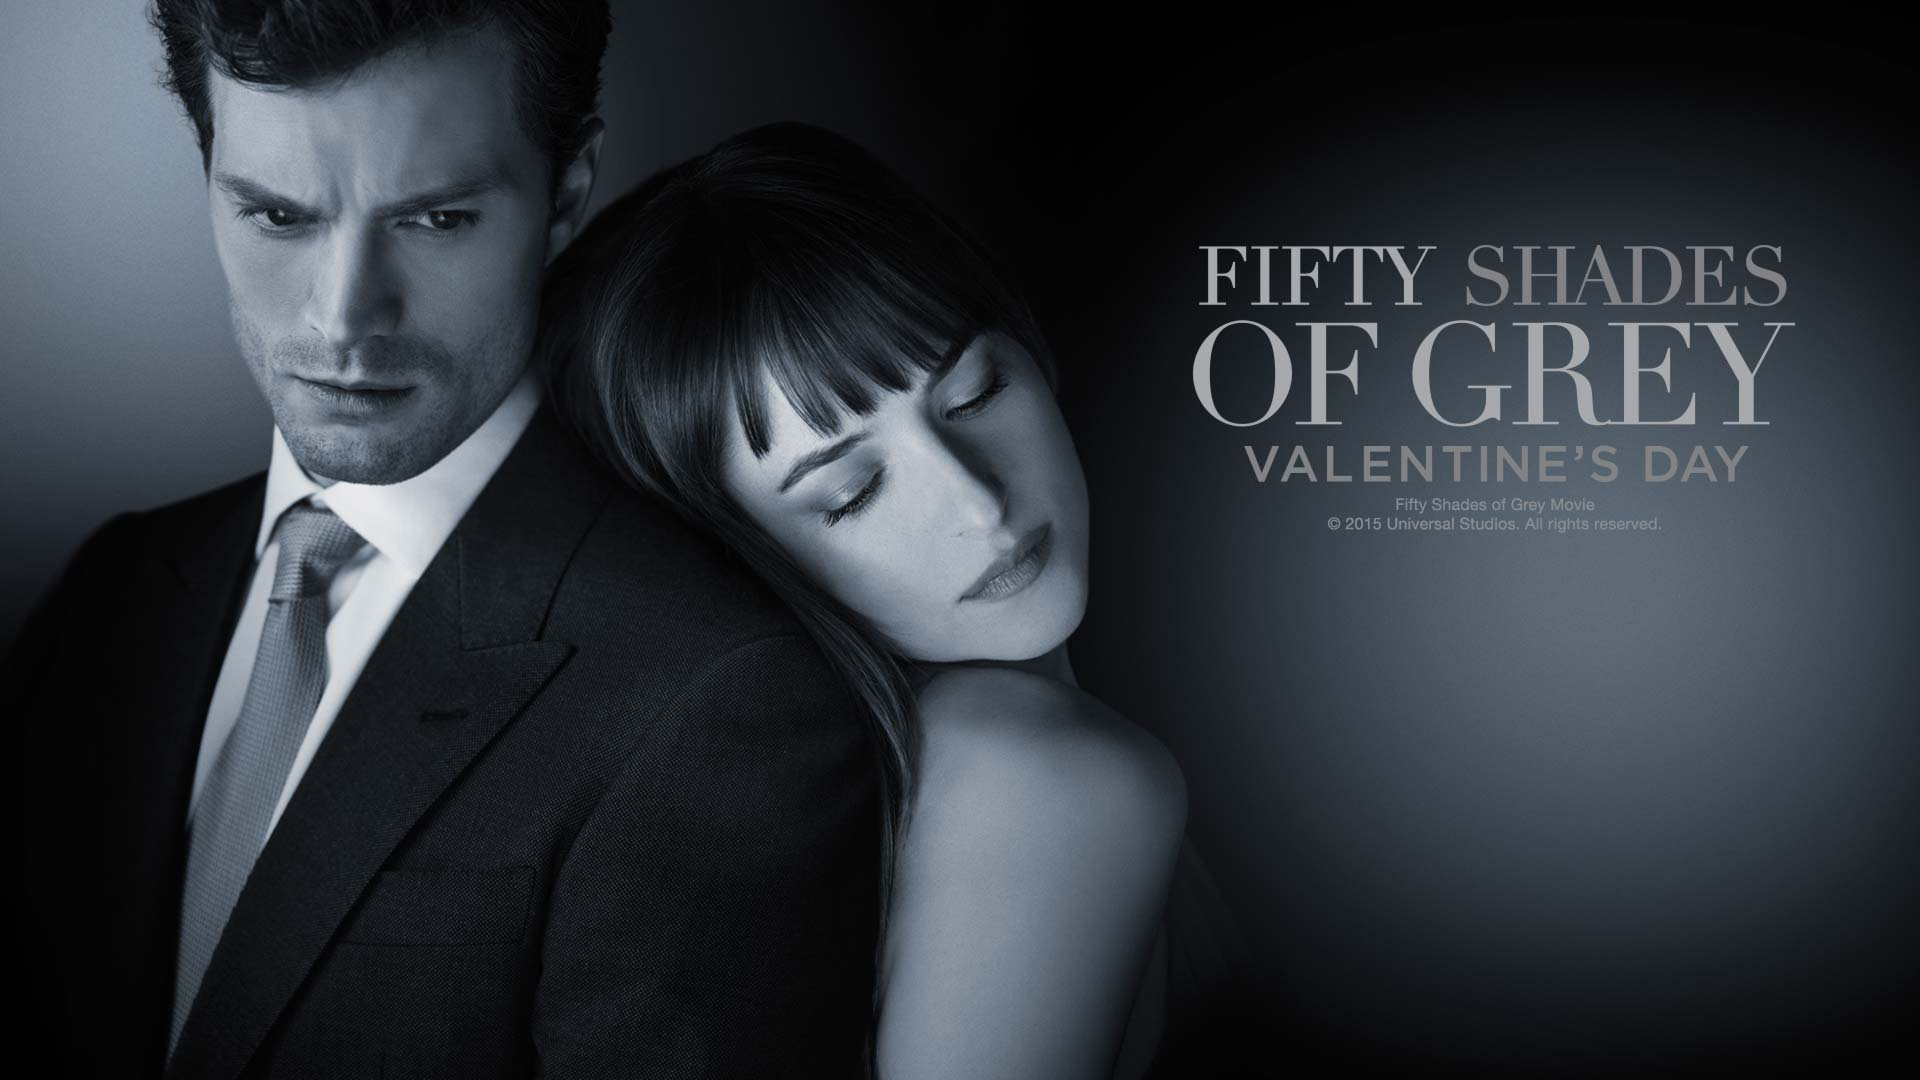 __TOP__ Fifty Shades Of Grey 720p Brrip X264 Yifyl collection-fiftyshades-gallery_0